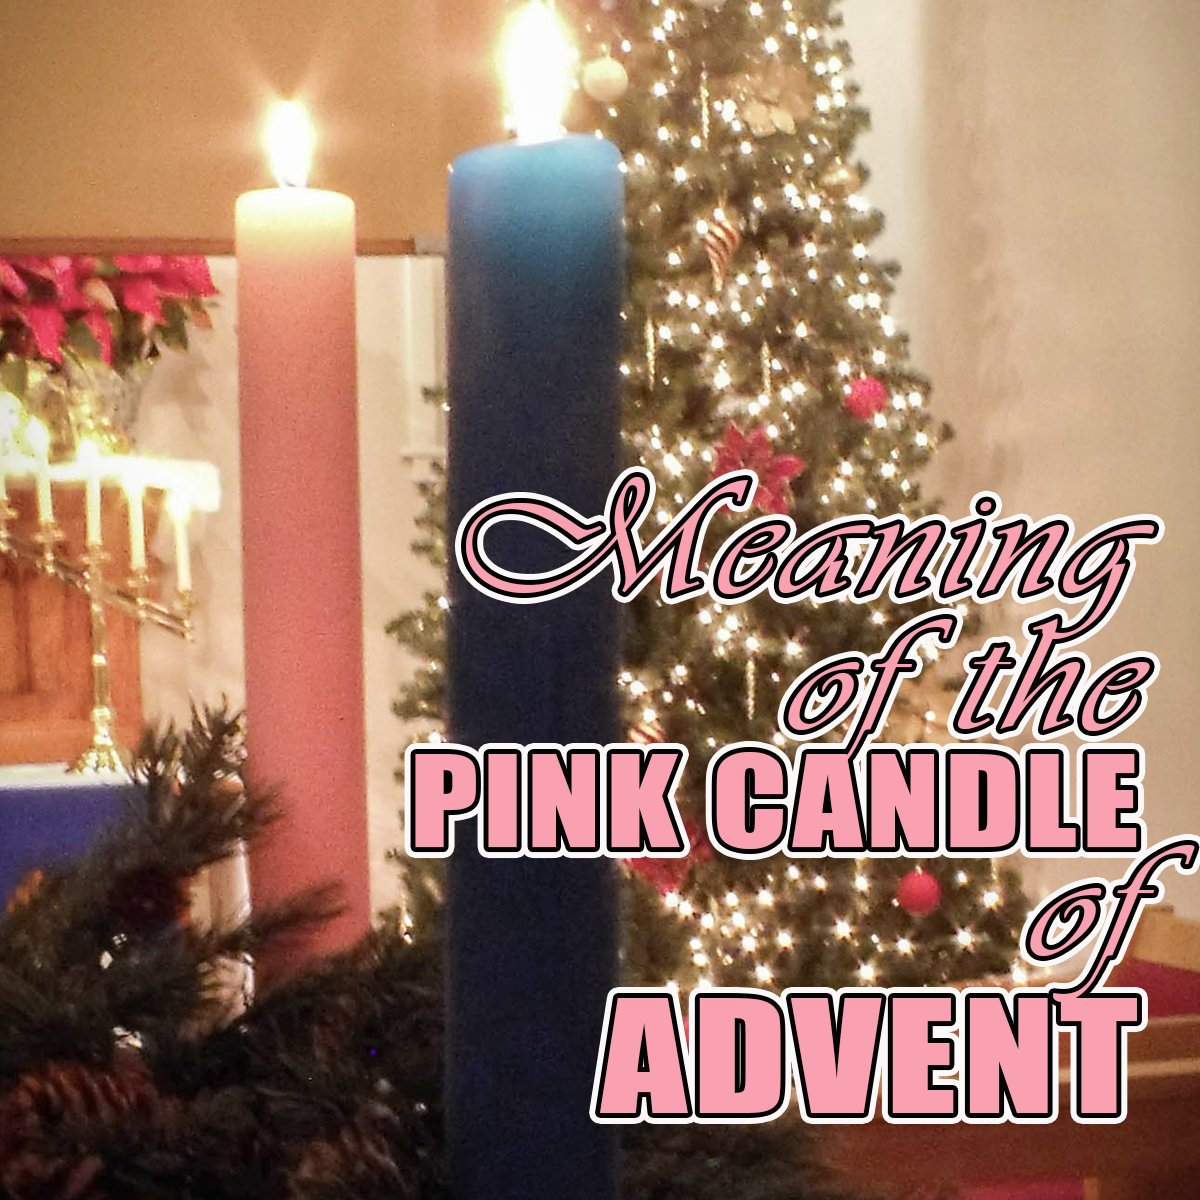 Leaning the meaning of the pink candle of Advent. How do you prepare for Christmas? Follow the daily Advent readings and devotionals.